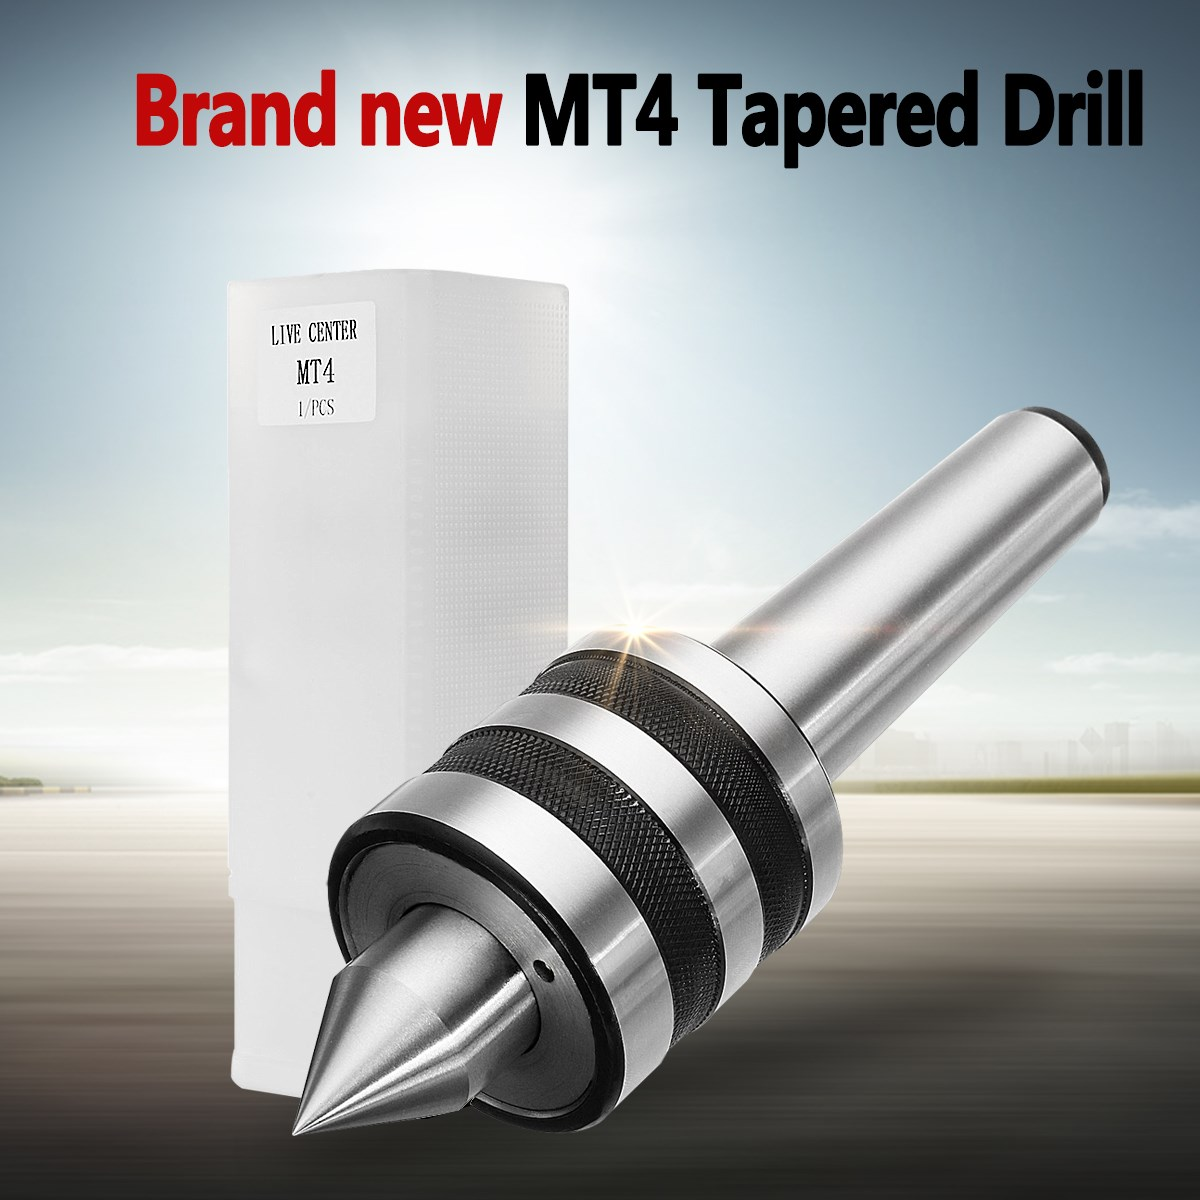 MT4 0.0003 inch Accuracy Precision Rotary Live Center Morse Taper 4MT Triple Bearing Lathe Medium Duty for High Speed Turning mt4 mk4 precision revolving morse live center taper steel shaft bearing lathe turning center point 60 degree